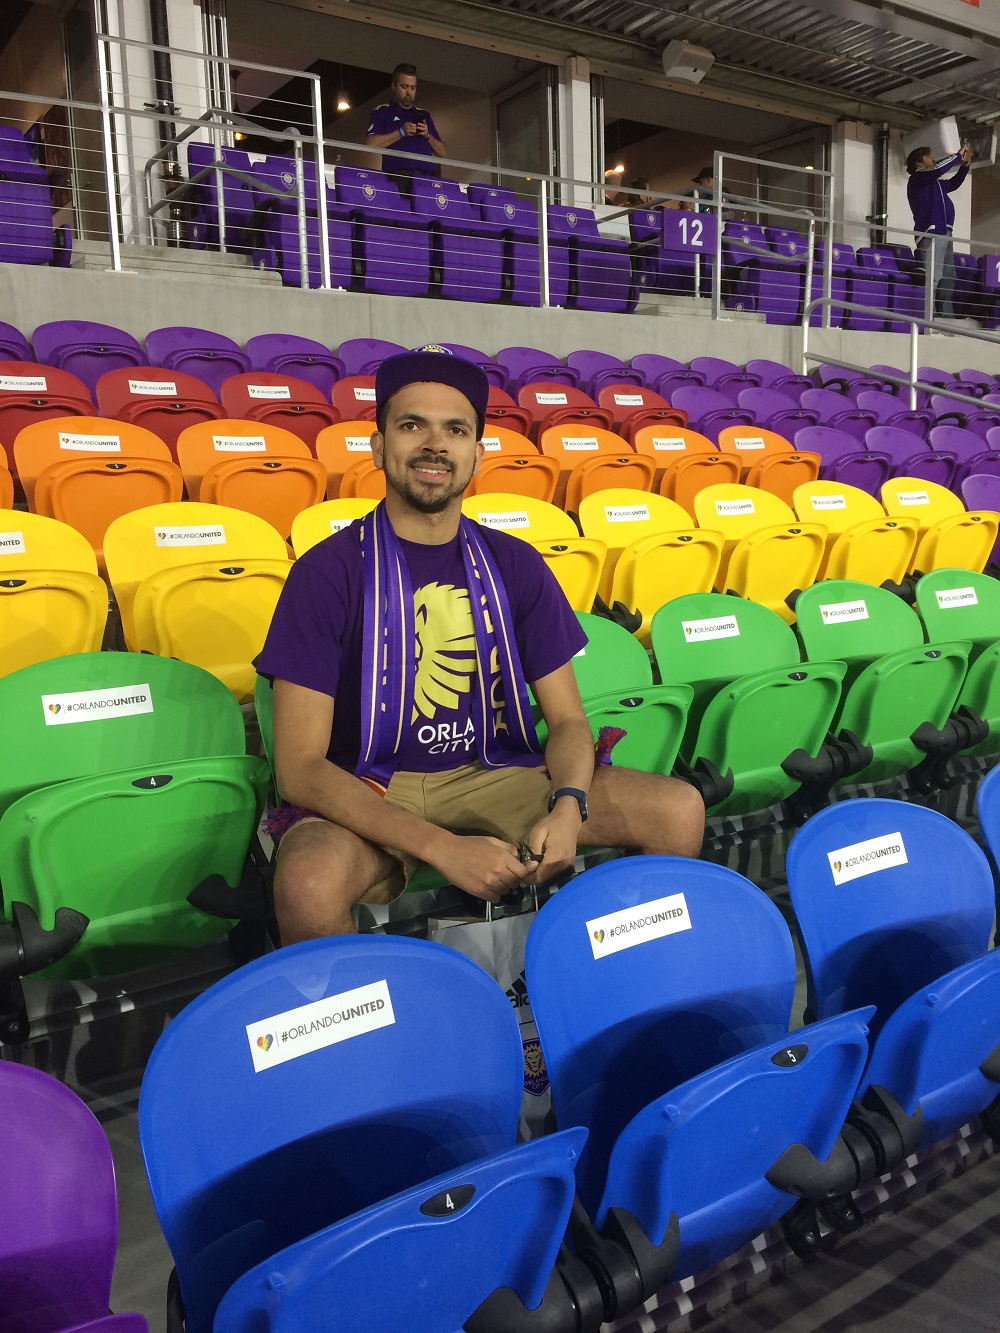 Orlando City UK In The #OrlandoUnited Seating Area